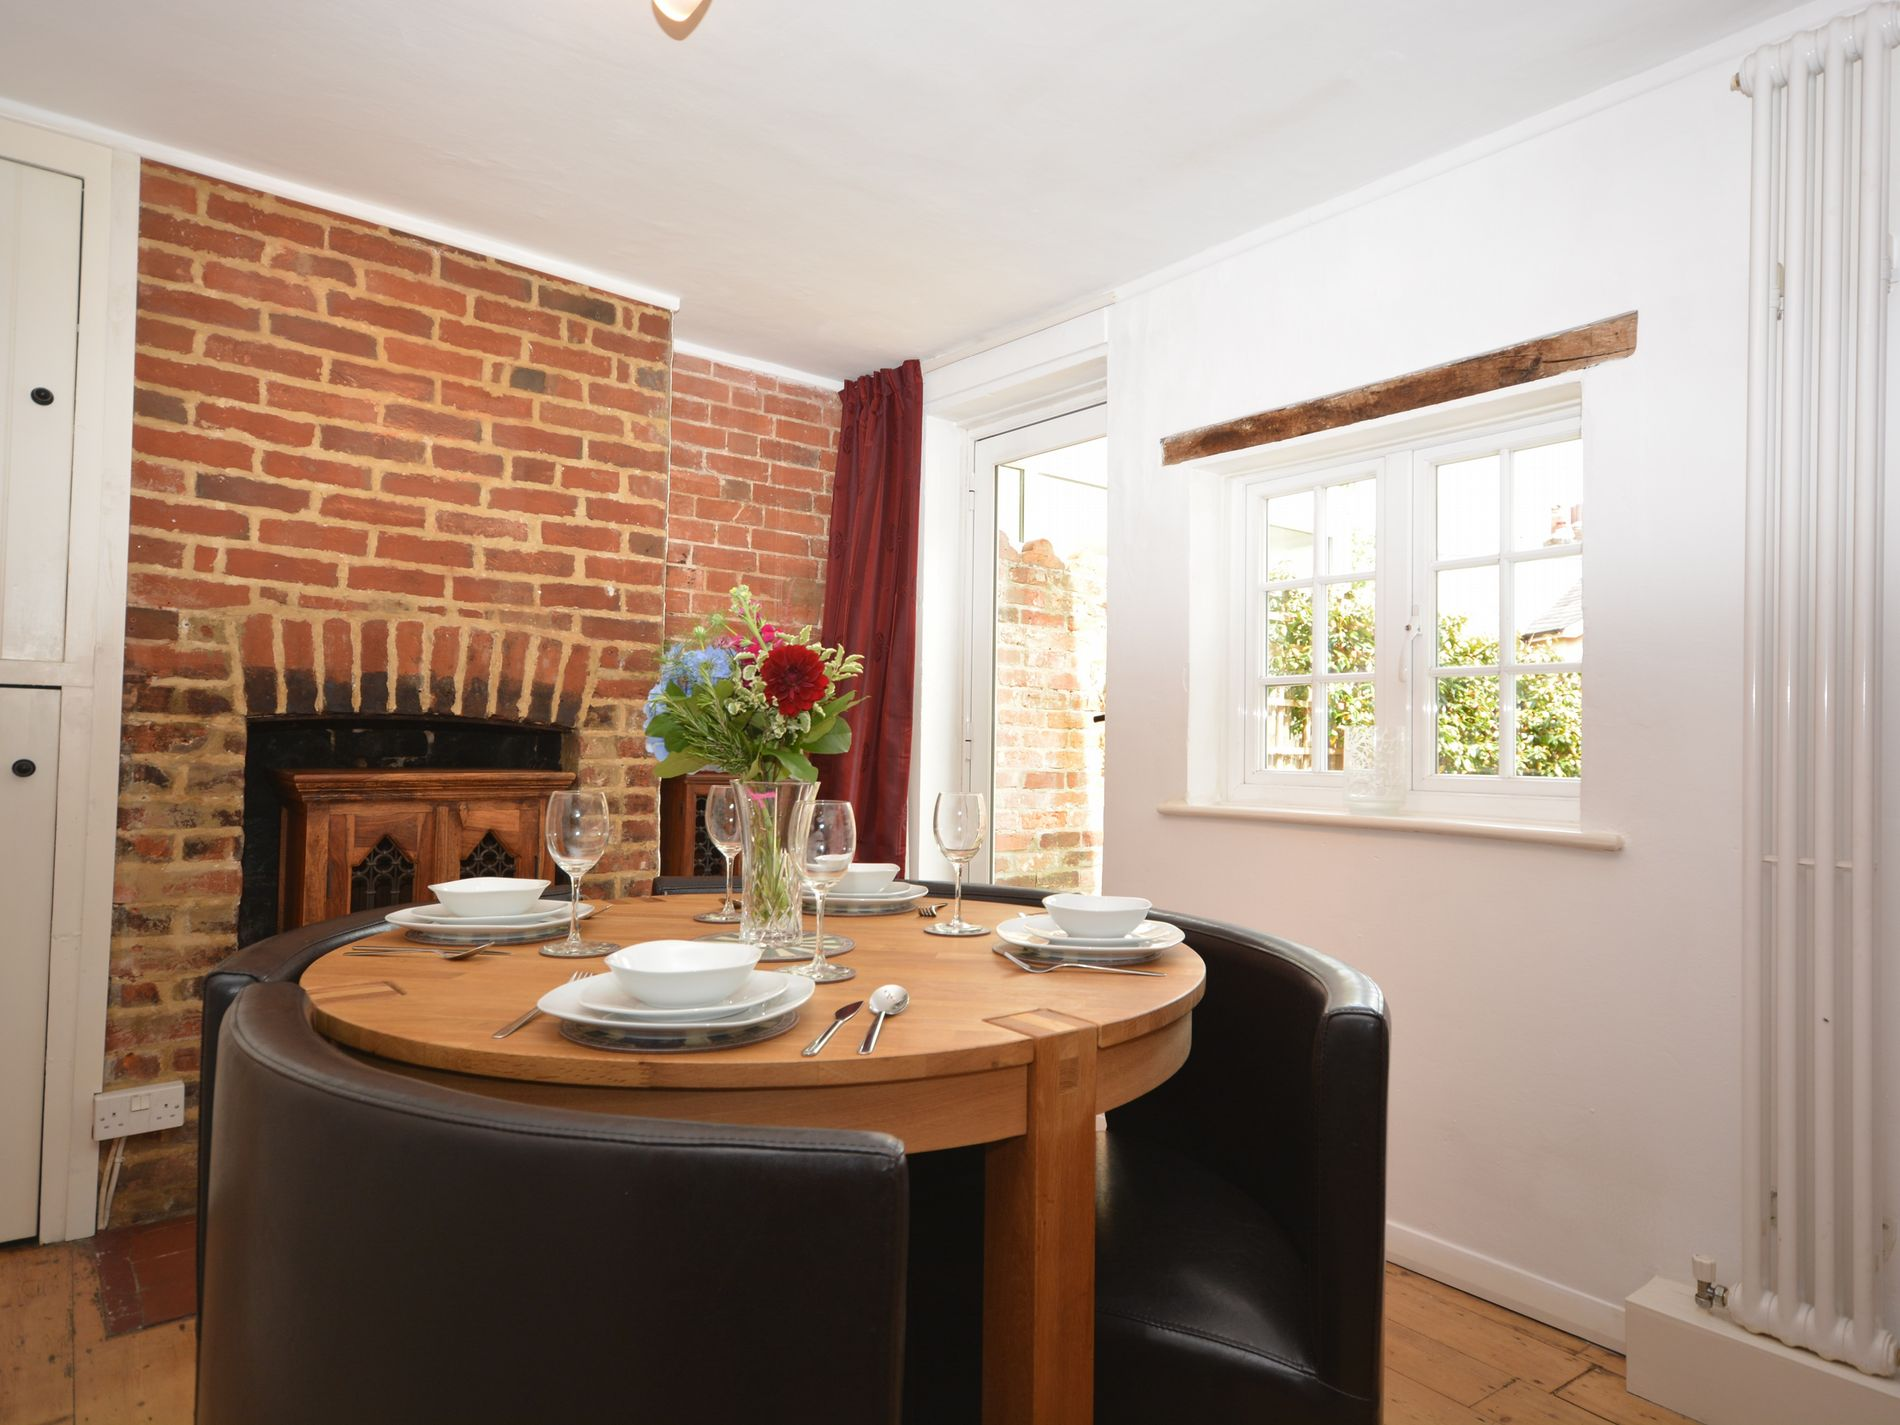 2 Bedroom Cottage in Winchester, South of England